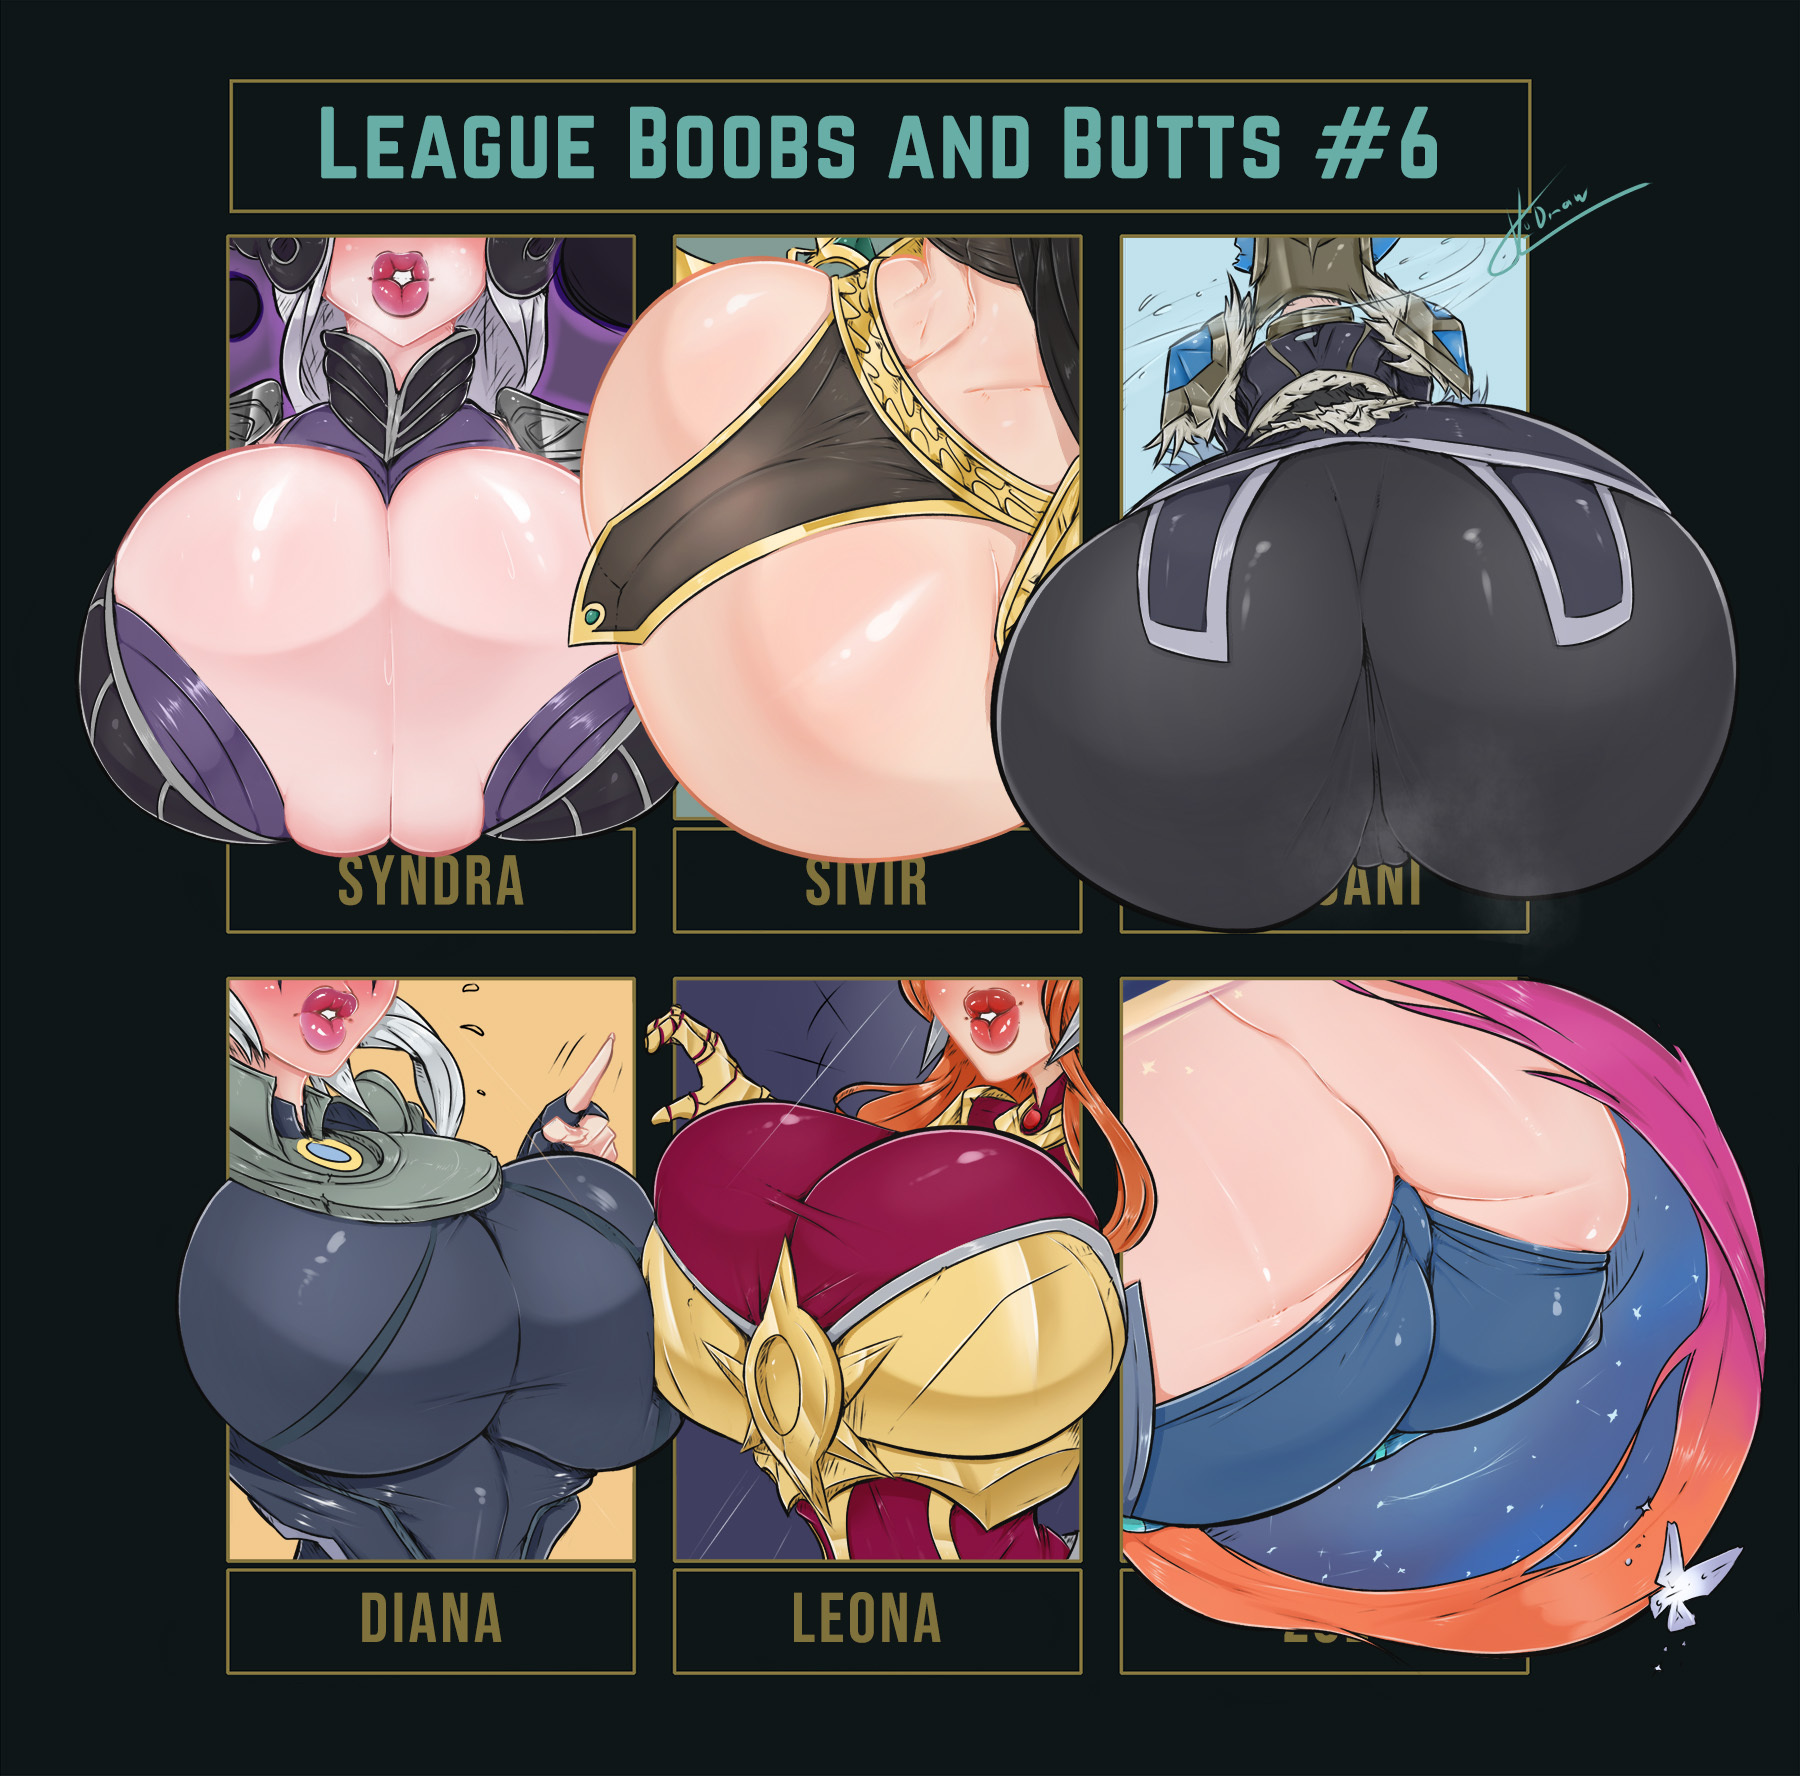 League Boobs and Butts #6